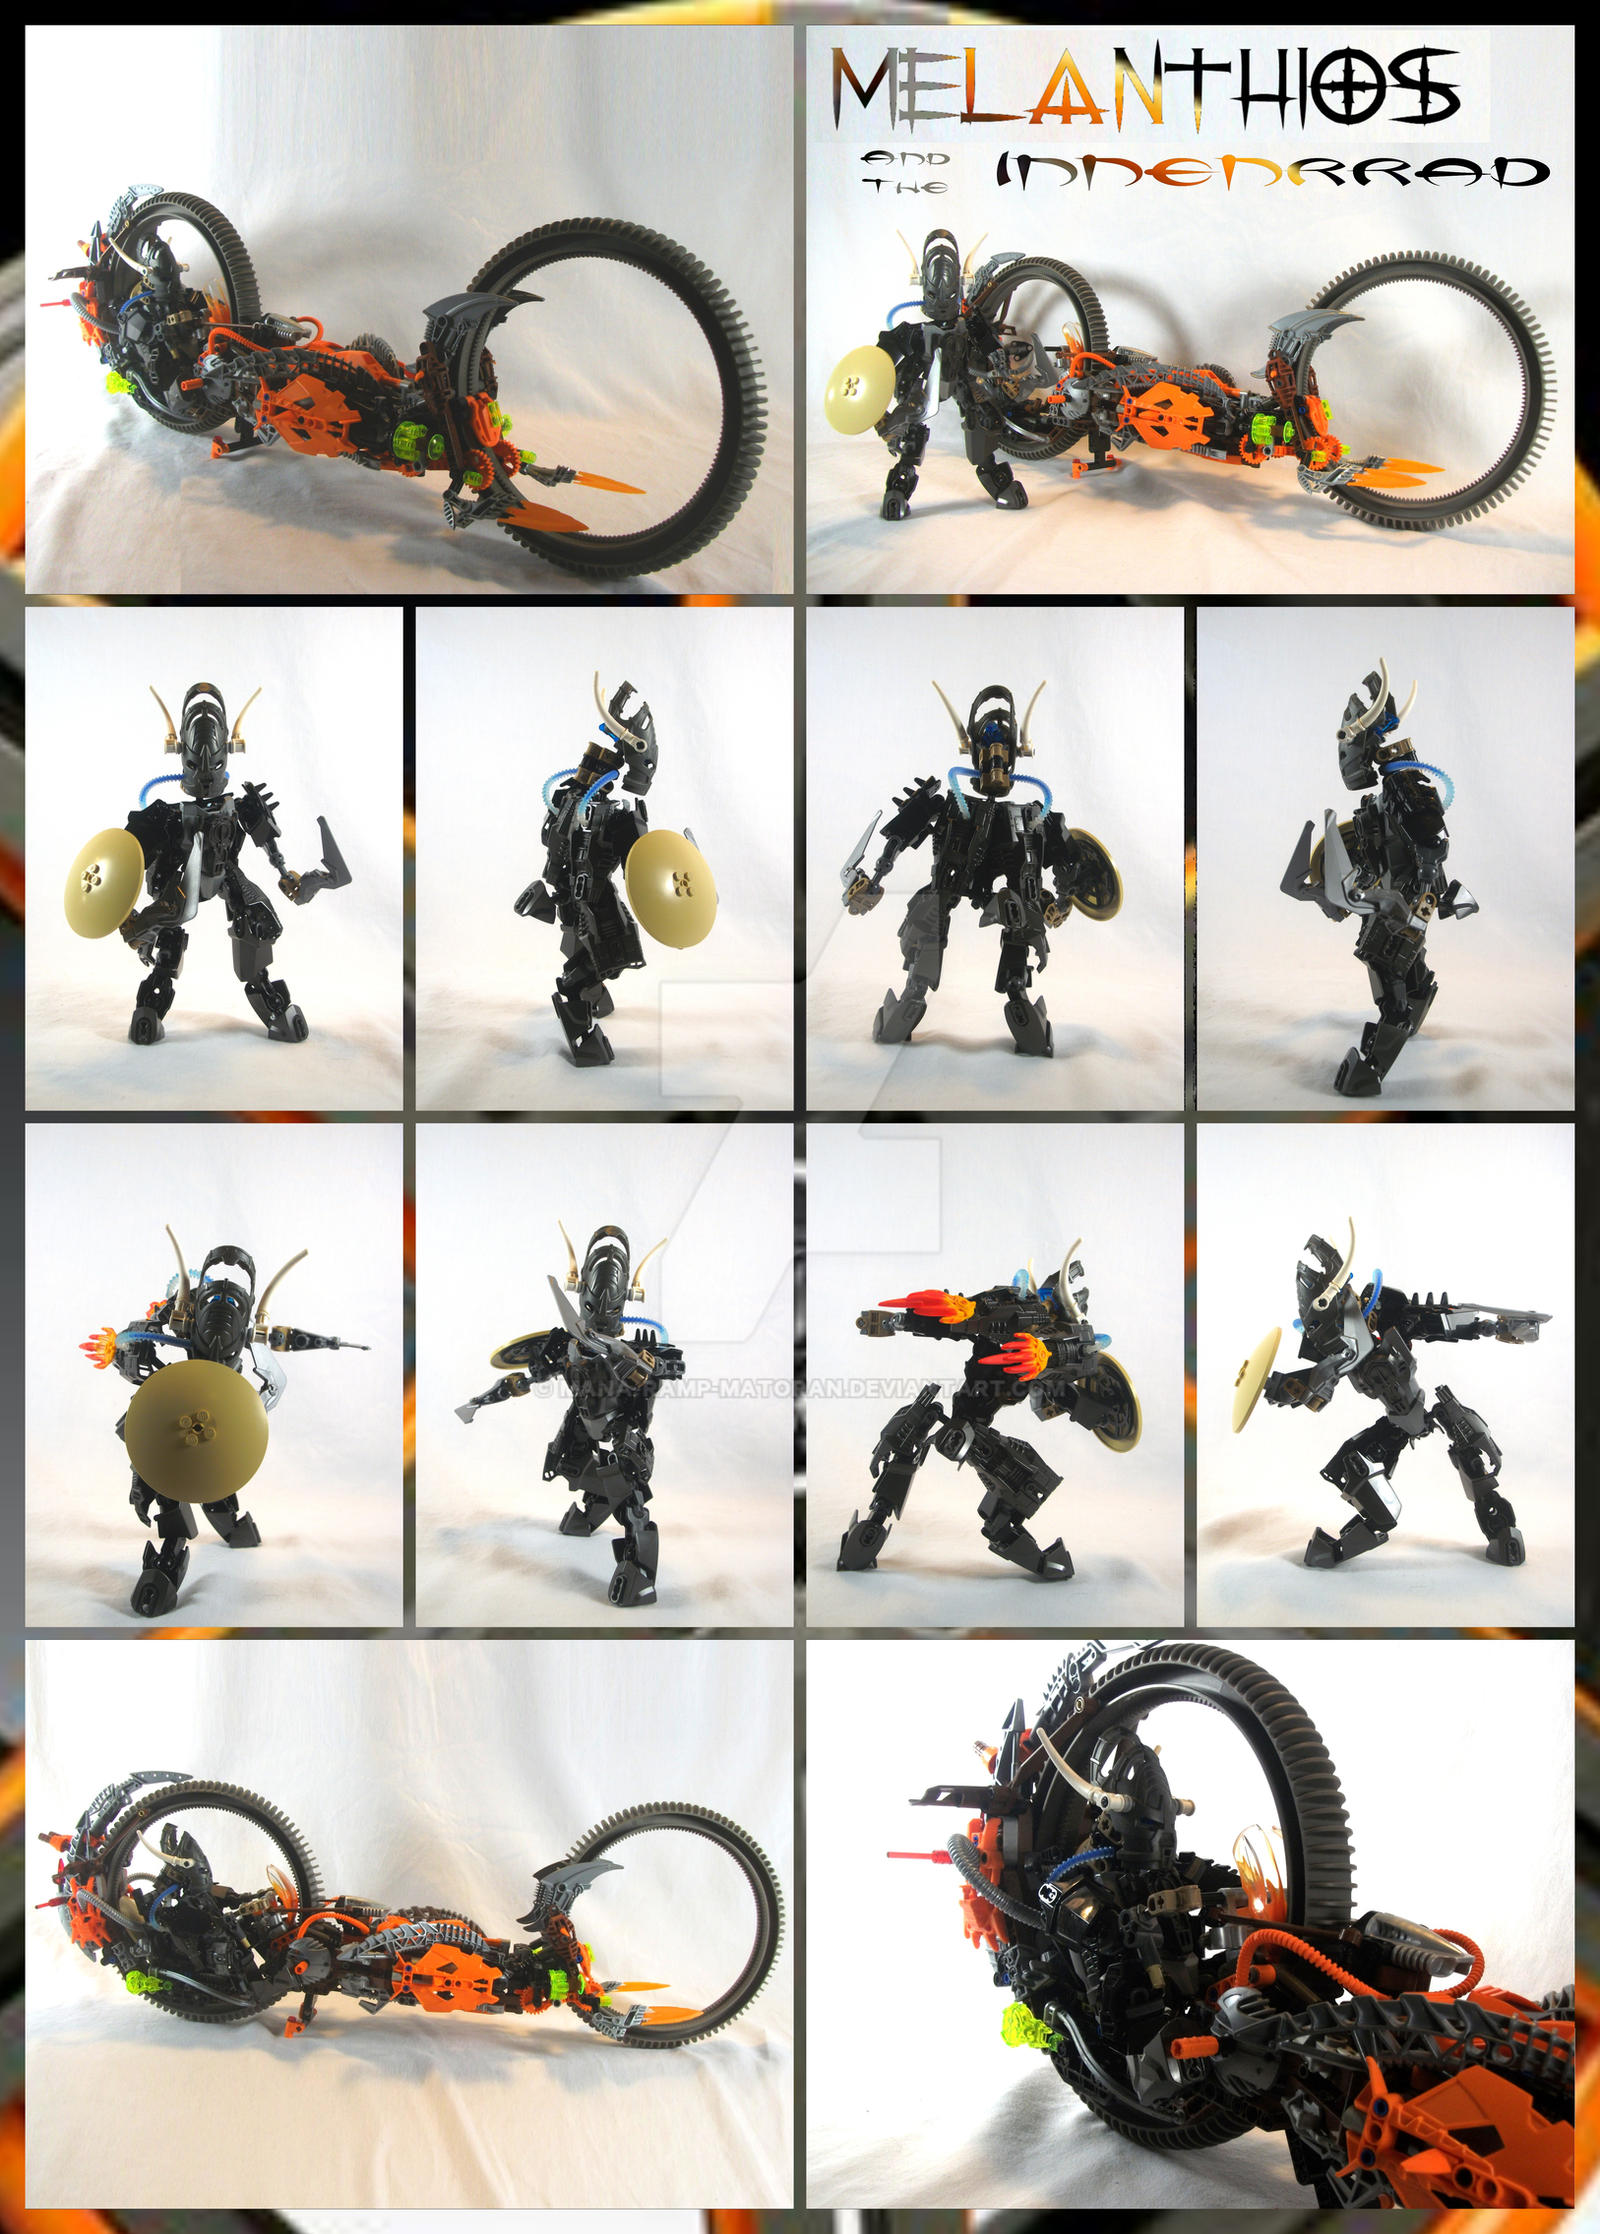 Bionicle MOC: Melanthios 2.0 and Innenrrad by 3rdeye88